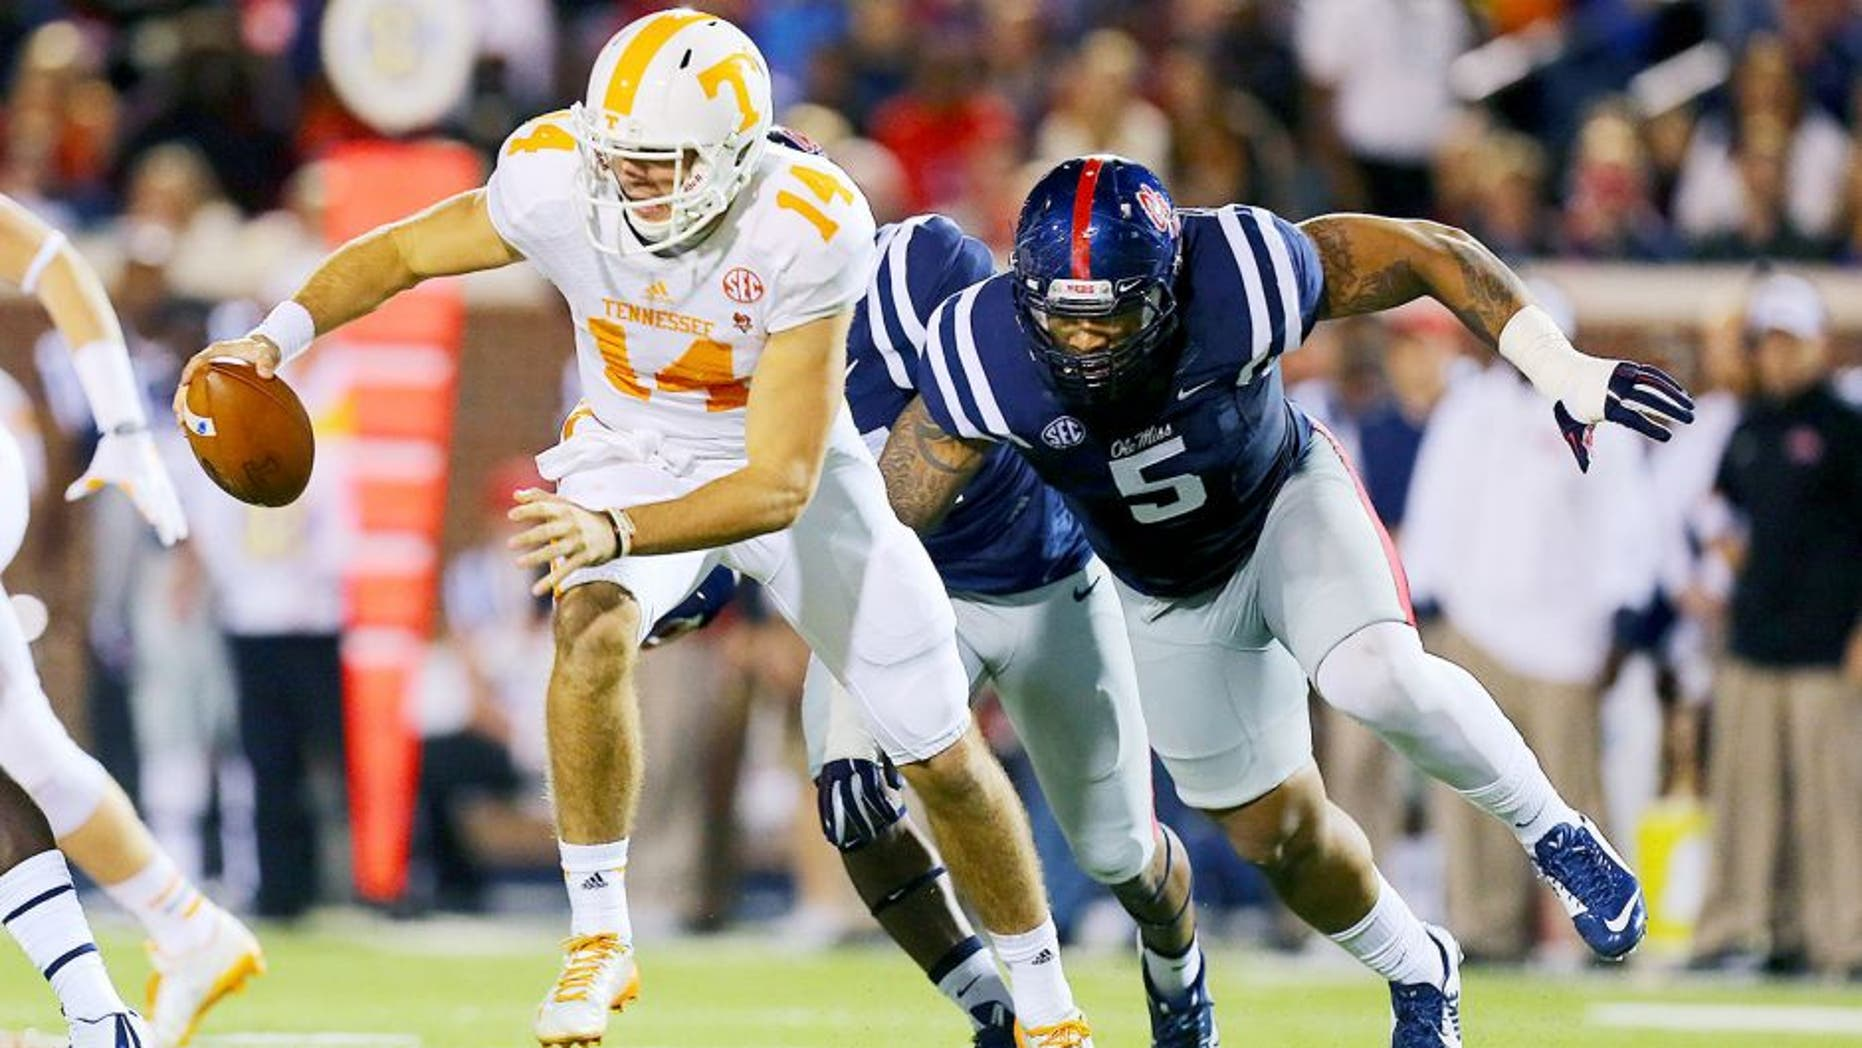 Oct 18, 2014; Oxford, MS, USA; Tennessee Volunteers quarterback Justin Worley (14) advances the ball while being chased by Mississippi Rebels defensive tackle Robert Nkemdiche (5) during the game at Vaught-Hemingway Stadium. Mandatory Credit: Spruce Derden-USA TODAY Sports